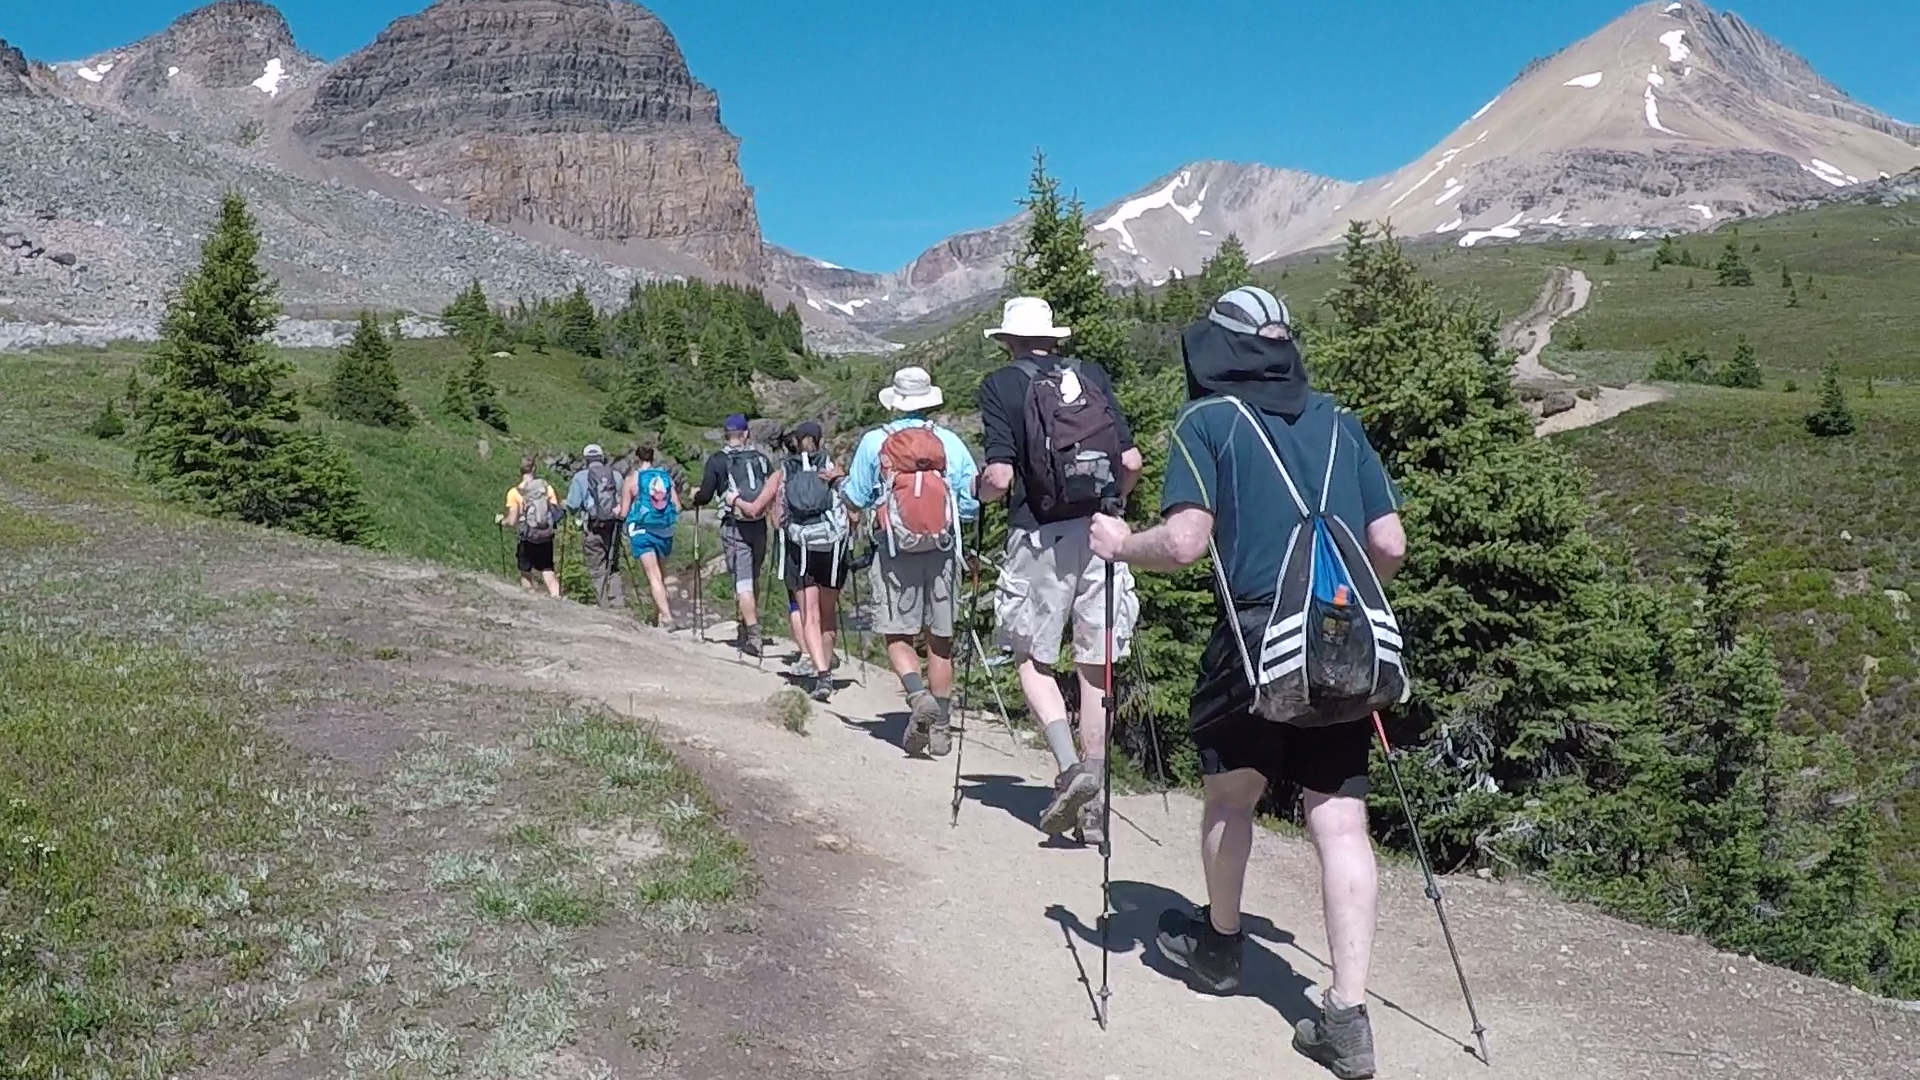 Fresh Adventures group on a guided hiking adventure.